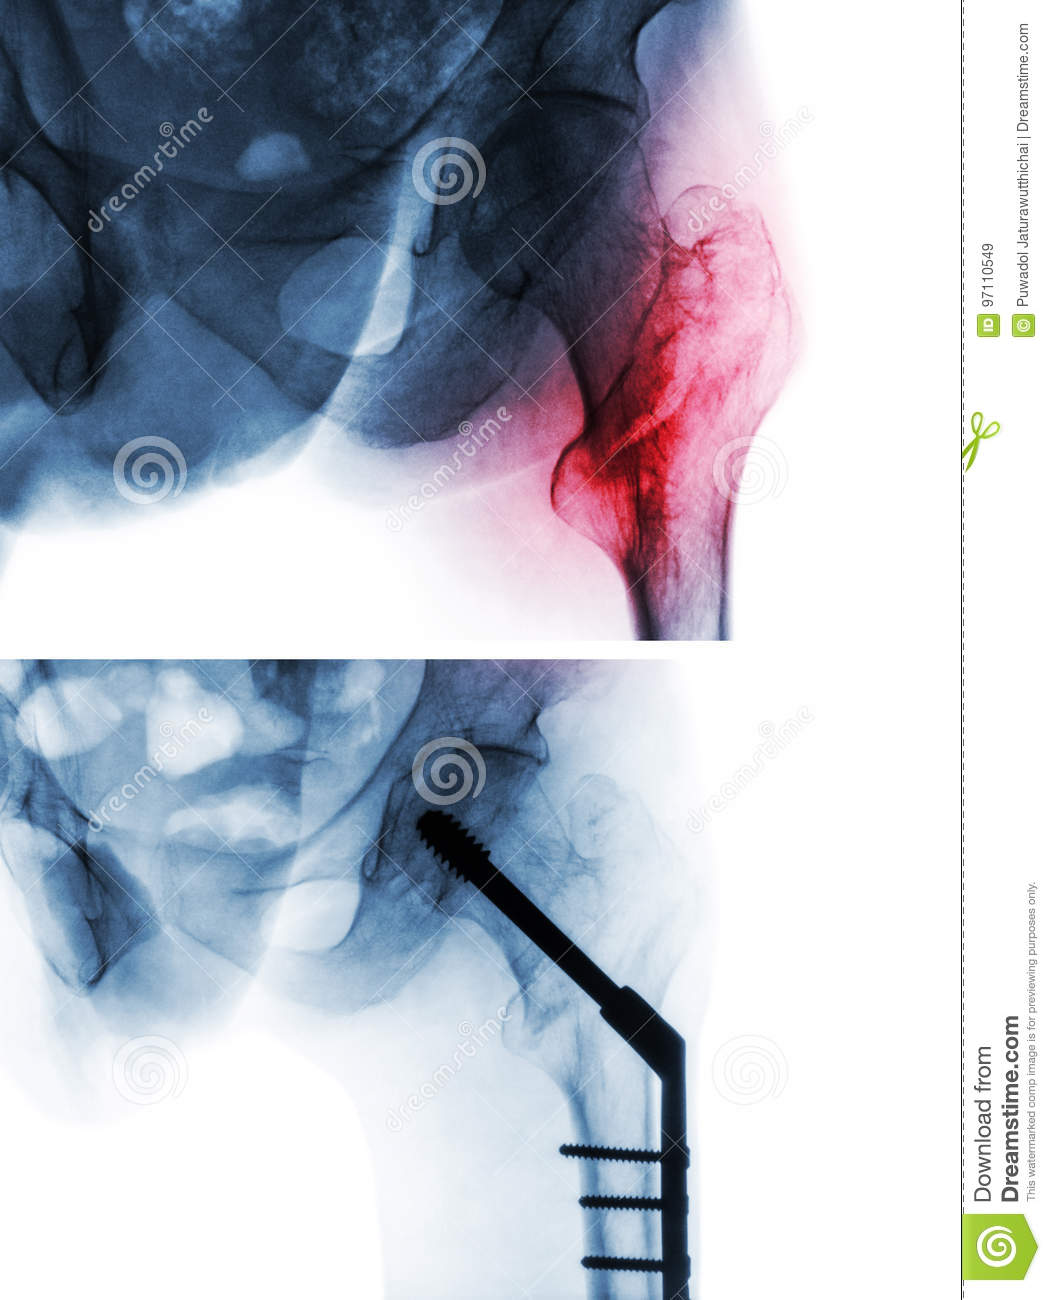 Intertrochanteric fracture femur thigh bone . X-ray of hip and comparison between before surgery upper image and after surger